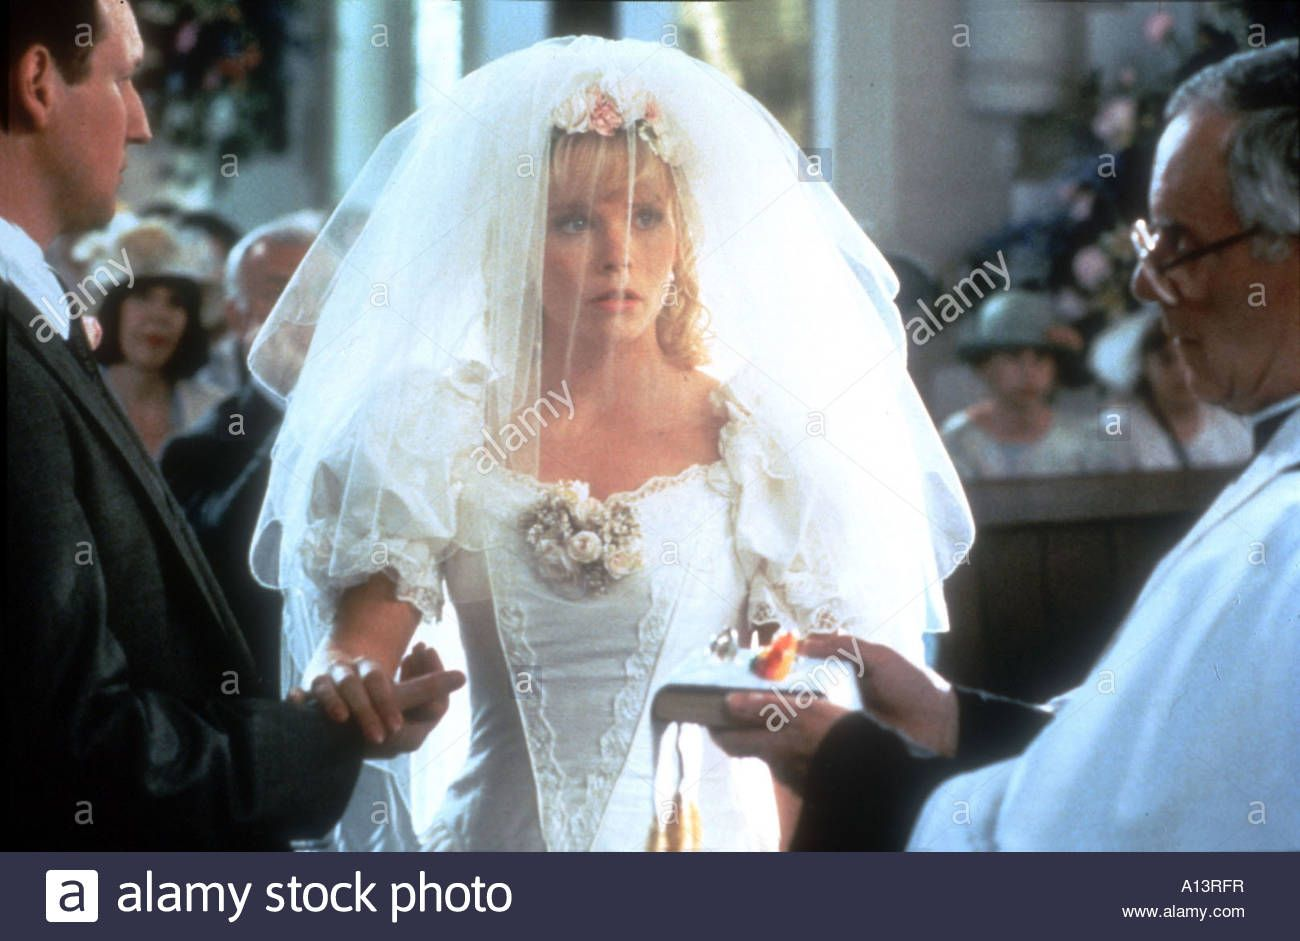 Sara Crowe As Laura Four Weddings And A Funeral 1994 Wedding Dresses Wedding Dresses Lace Dresses